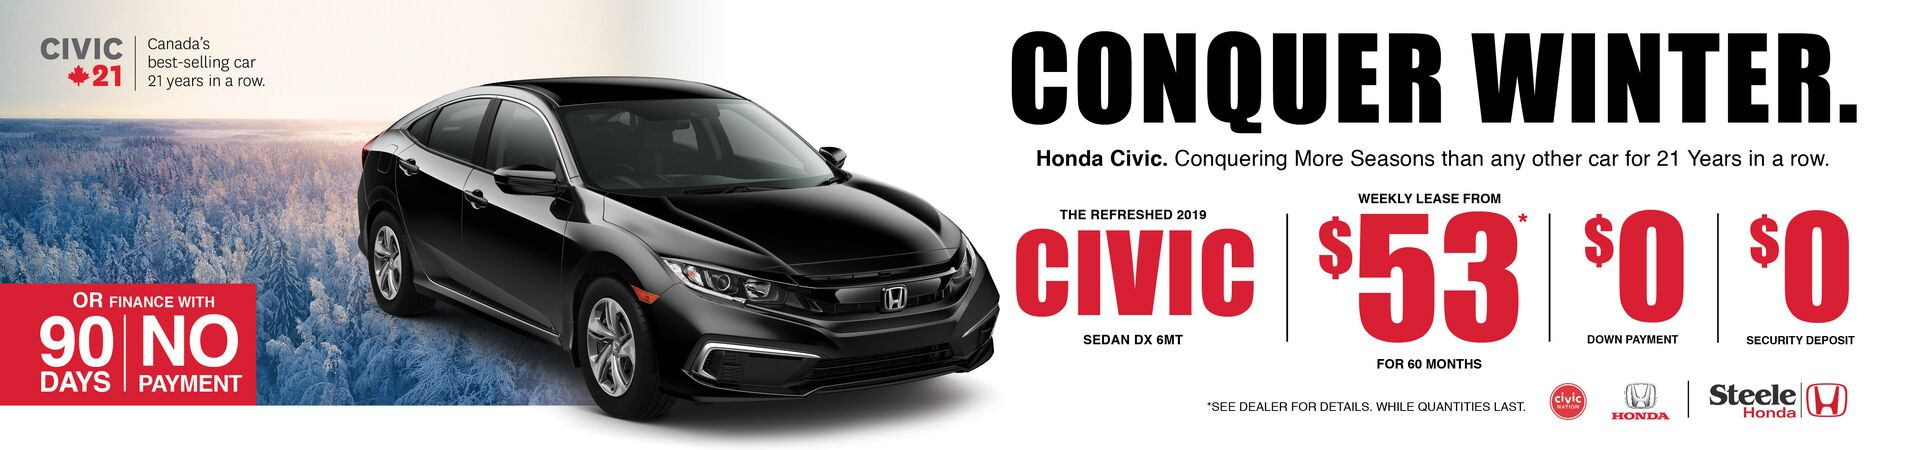 Conquer Winter with the 2019 Civic